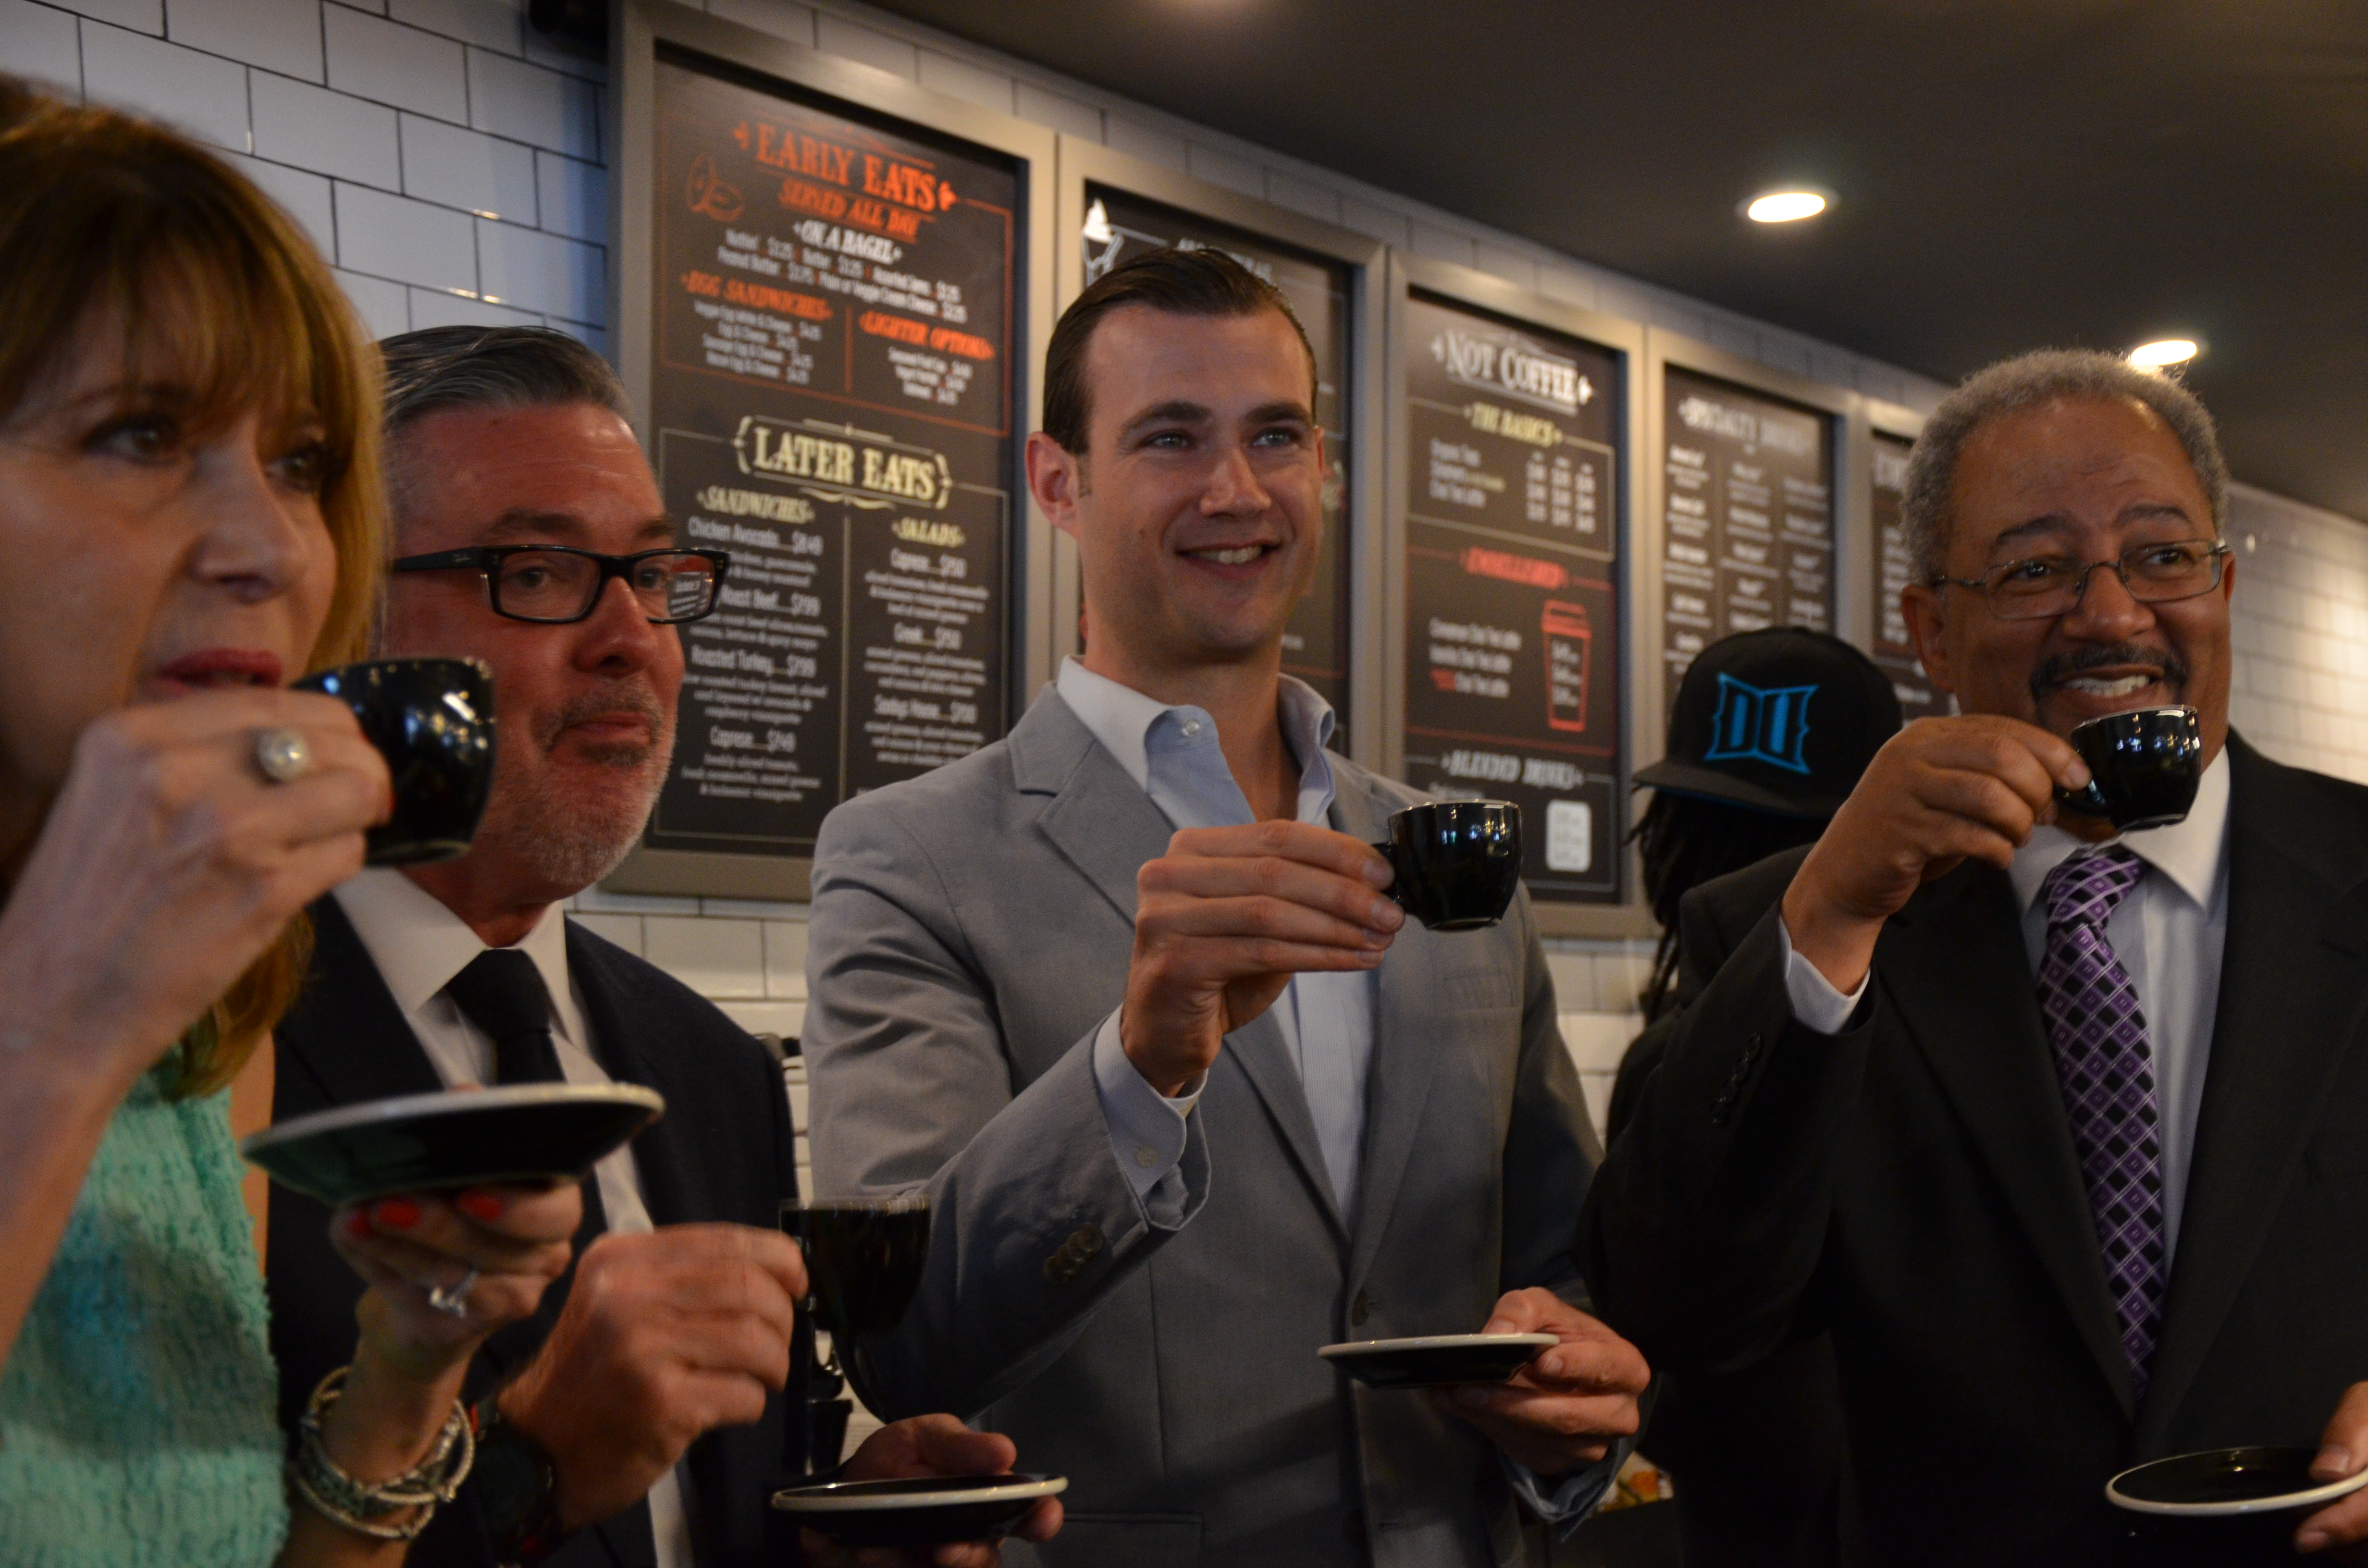 Close School of Entrepreneurship Dean Donna De Carolis, President John Fry, Saxbys Coffee CEO and founder Nick Bayer and U.S. Congressman Chaka Fattah sipped the first espressos served at Drexel's new Saxbys.